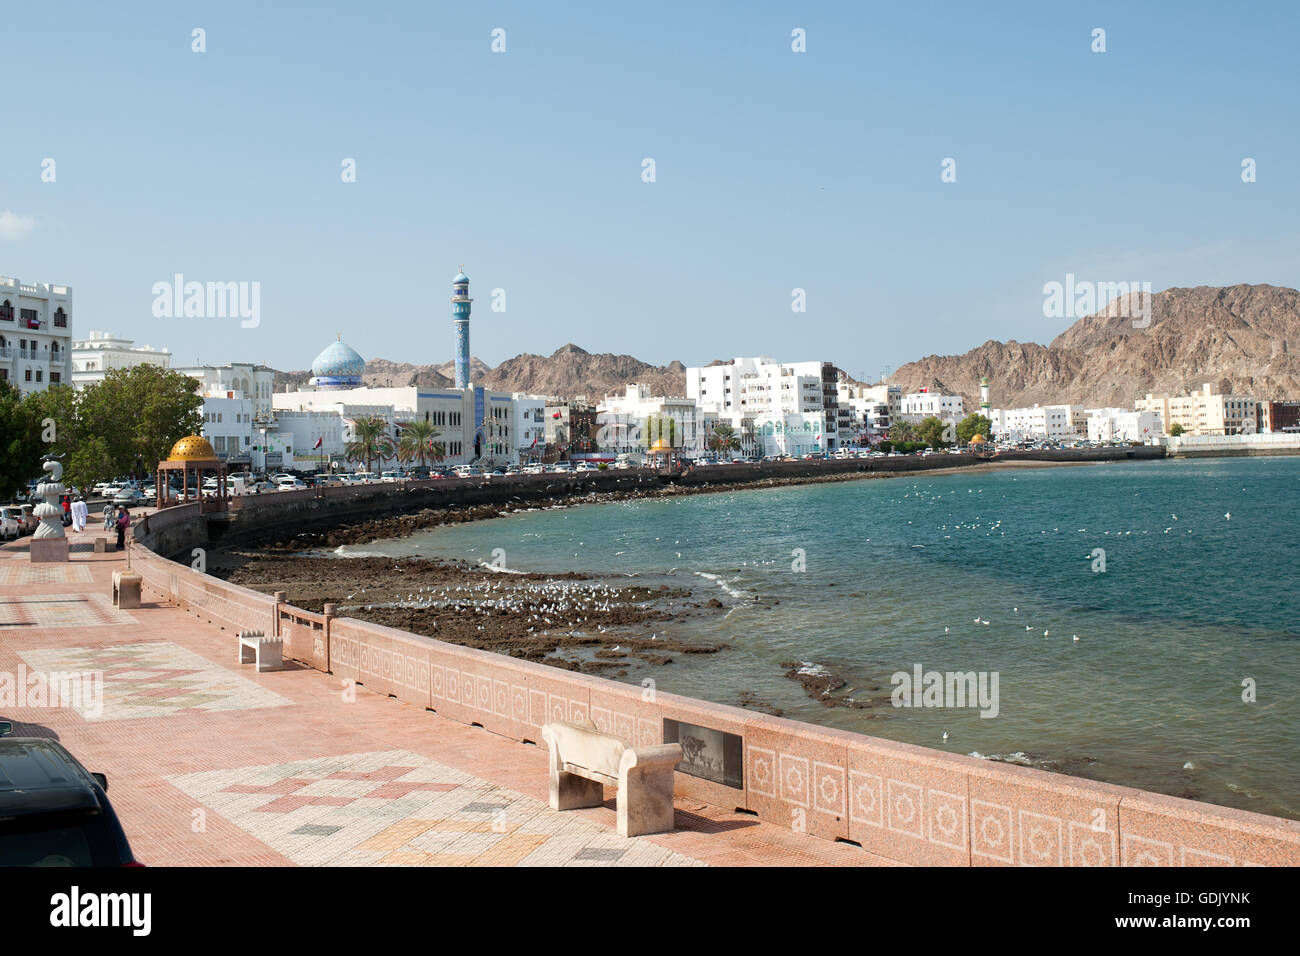 Mutrah corniche in Muscat, the capital of the Sultanate of